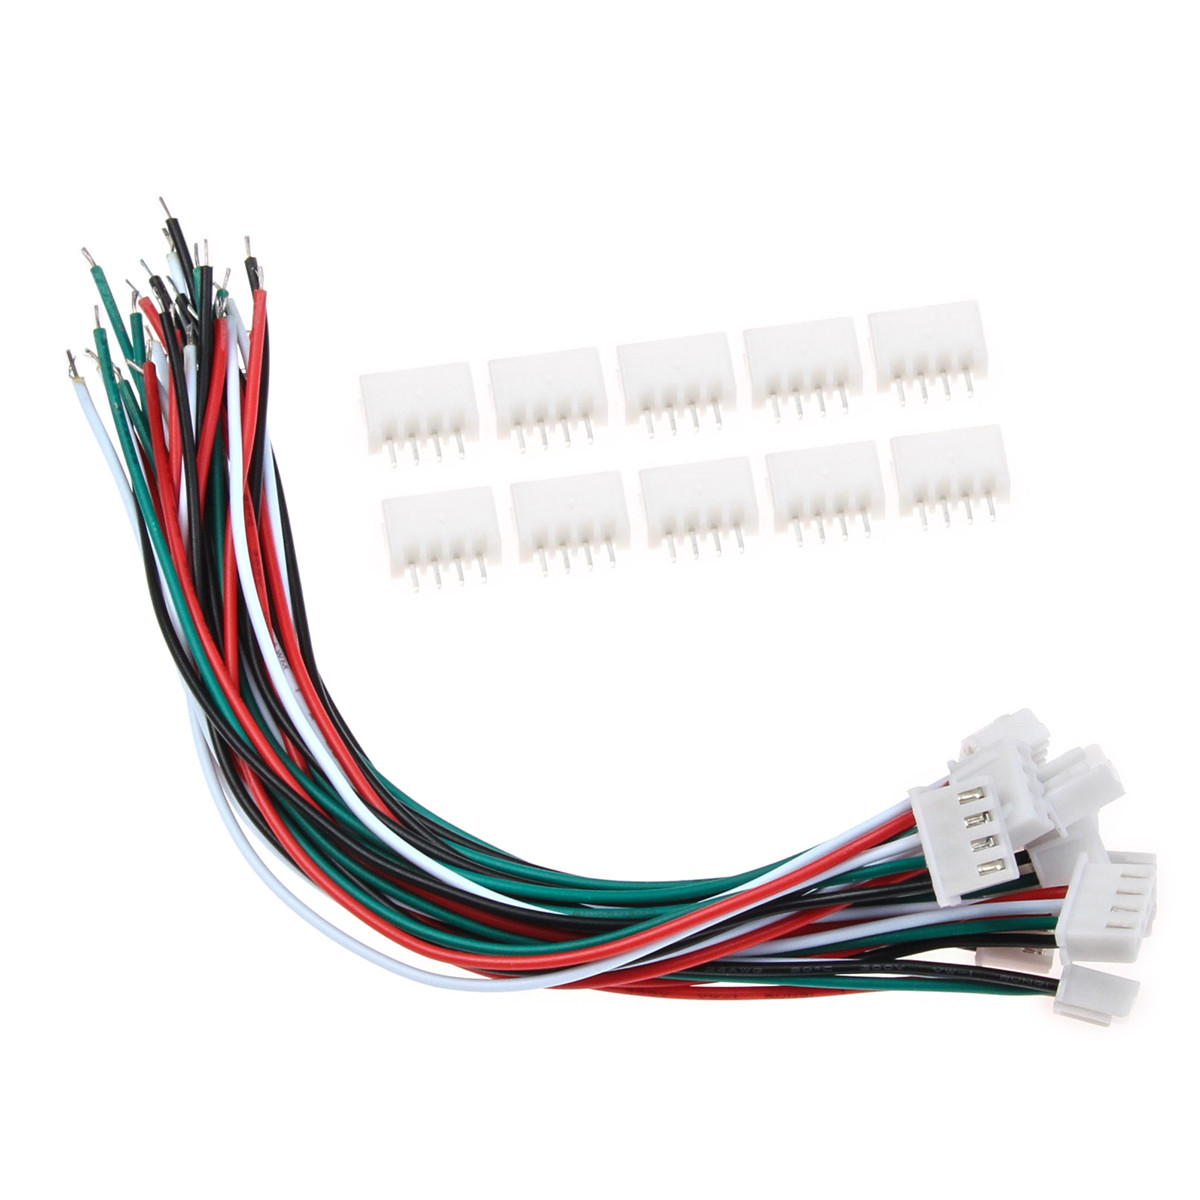 10 Set 4 Pin Connector Plug Mini Micro Wire Cable Pin Connectors JST <font><b>XH</b></font> <font><b>2.54mm</b></font> With 24AWG 1007 Wires 150mm Length Electricity image